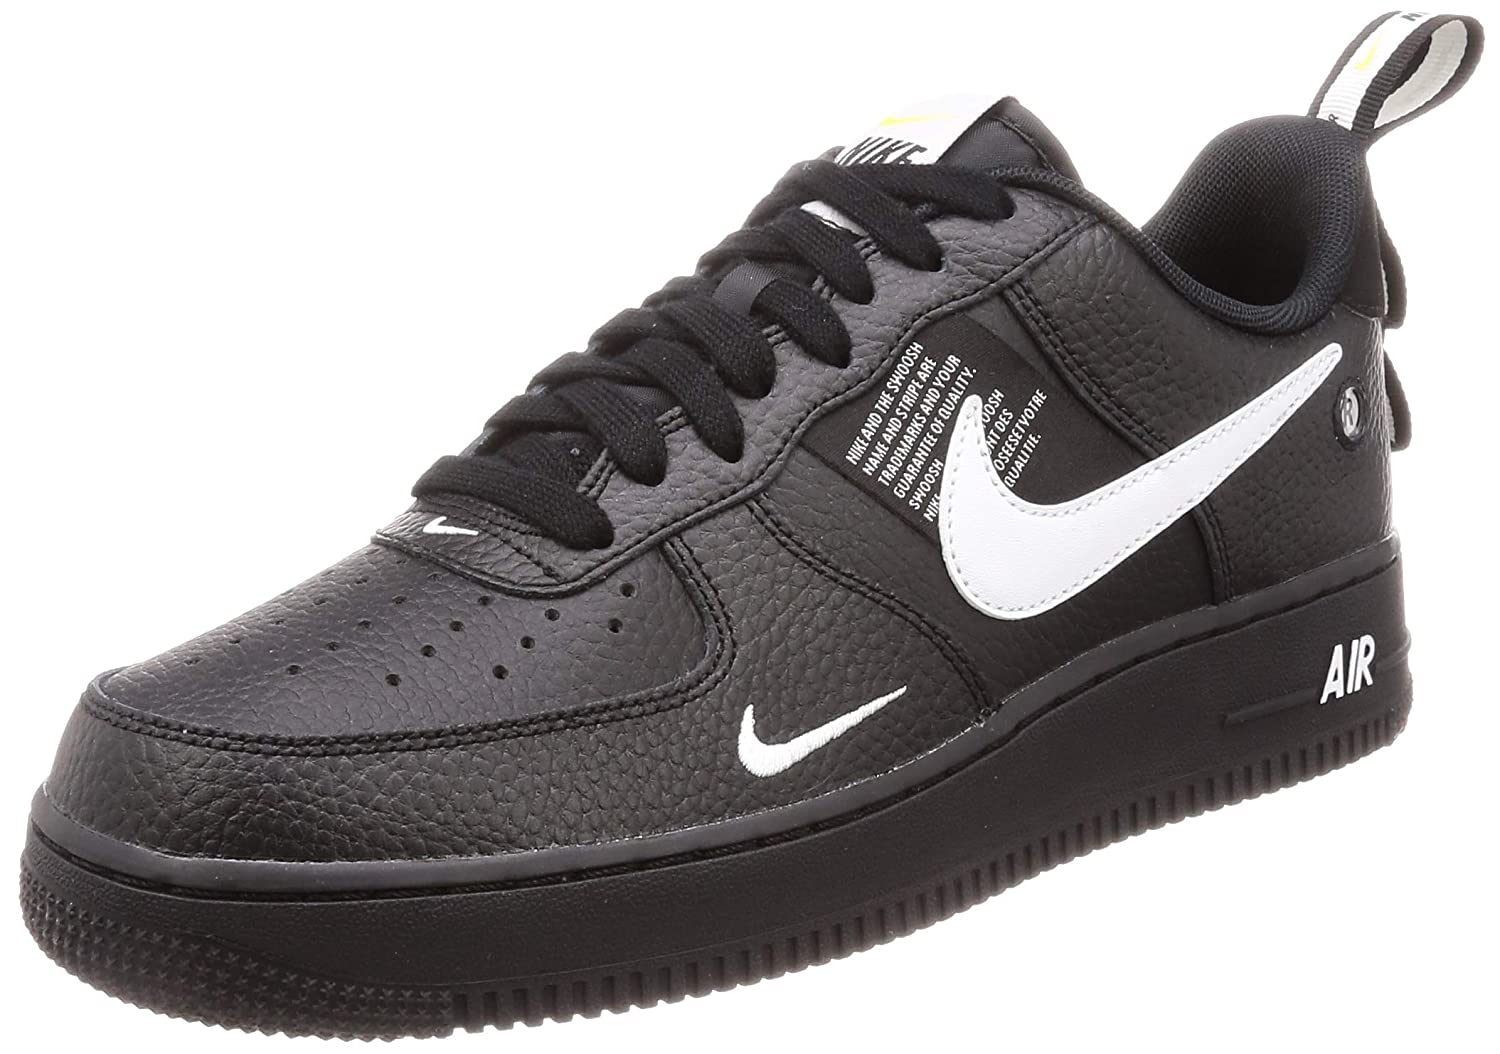 huge selection of be857 66cde Nike Herren Air Force 1  07 Lv8 Utility Gymnastikschuhe weiß schwarz   Amazon.de  Schuhe   Handtaschen